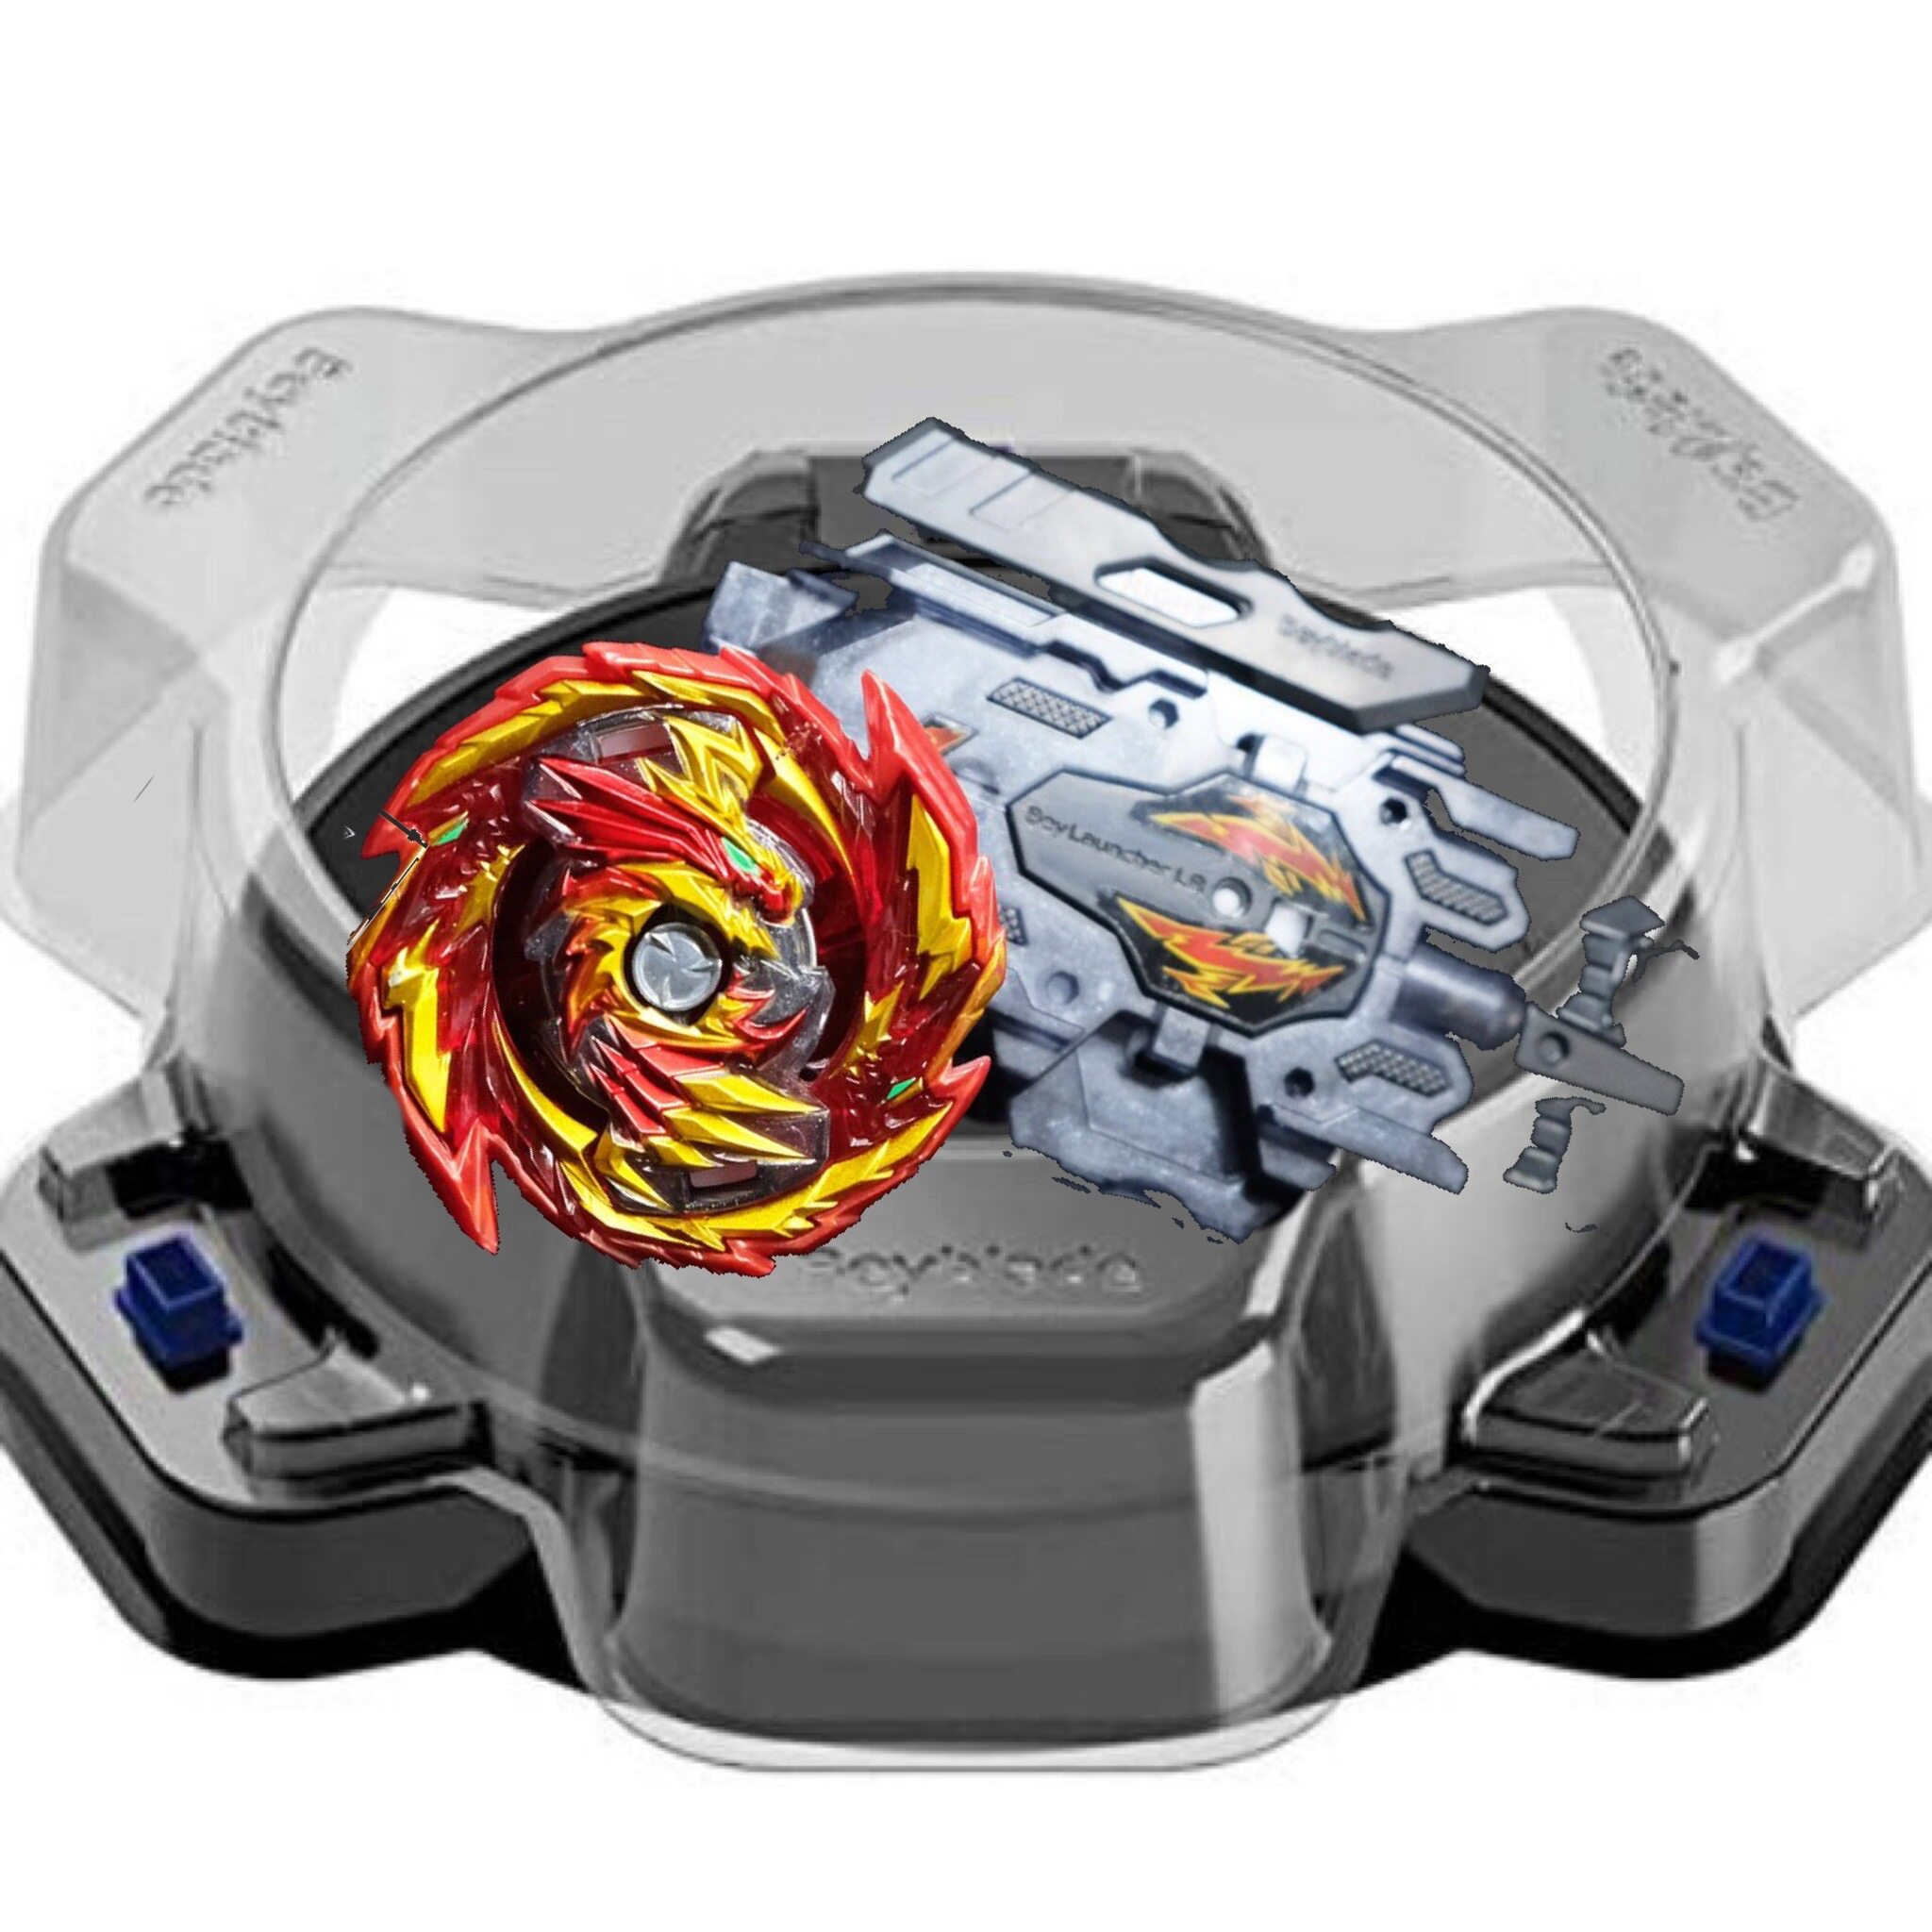 [LIMITED TIME ONLY] TAKARA TOMY BEYBLADE BURST GT B-147-02 FREE 1 LR LAUNCHER & 1 FREE RANDOM STADIUM ARENA beyblade burst sparking beyblade burst takara tomy